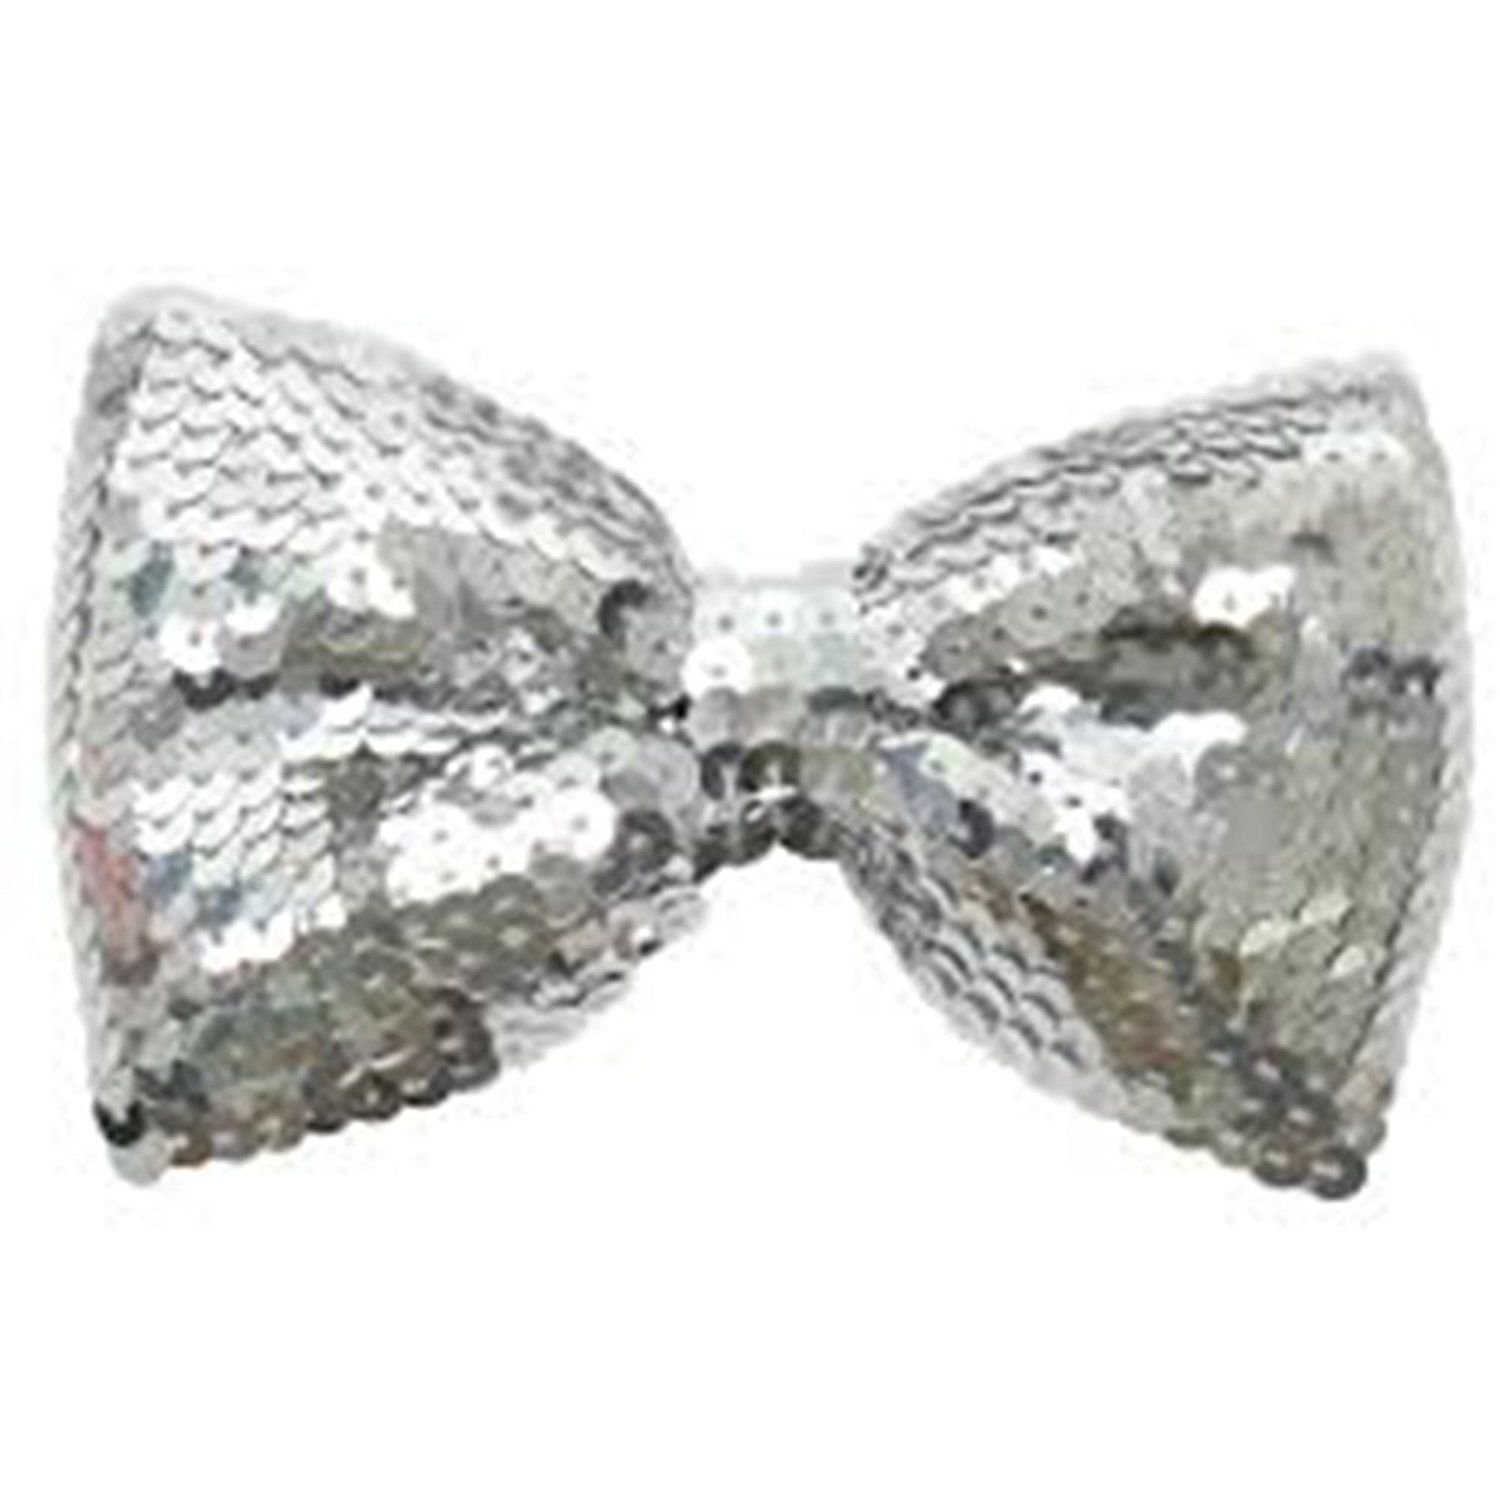 Sequin Bow Tie - Silver Accessory fancy dress warehouse 51581